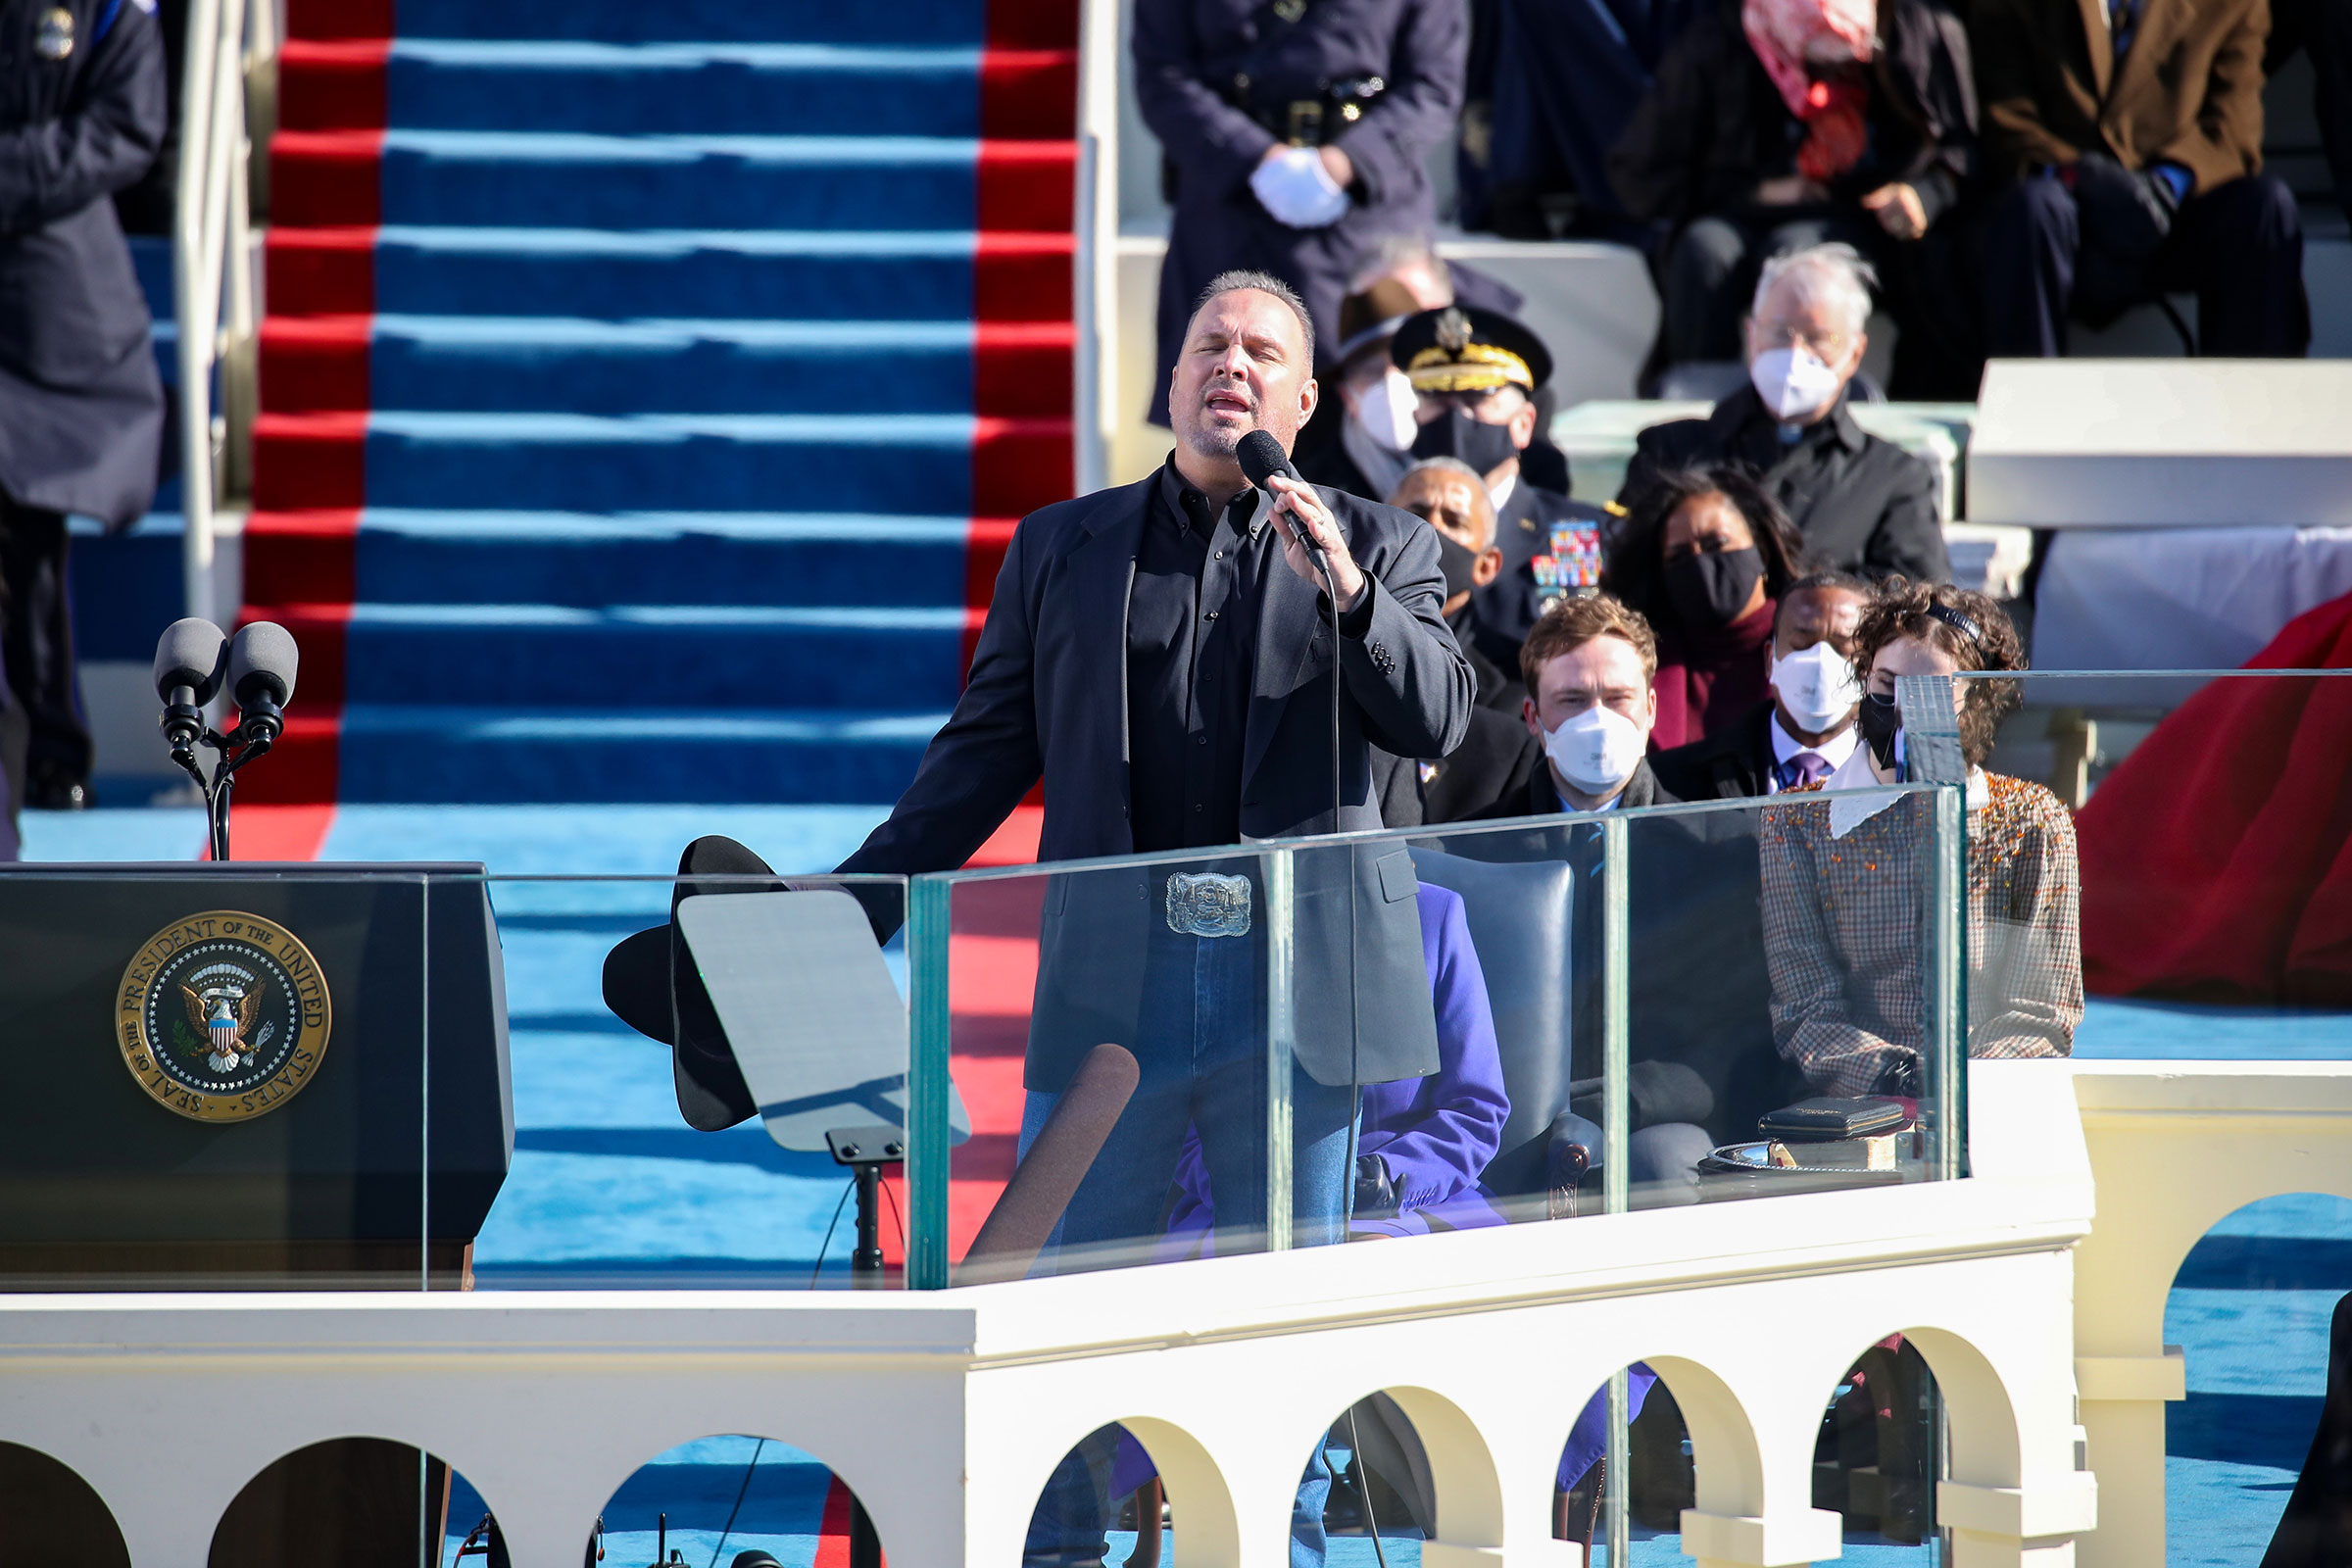 Garth Brooks performs at the inauguration of President Joe Biden and Vice President Kamala Harris on the West Front of the Capitol in Washington on Jan. 20, 2021.